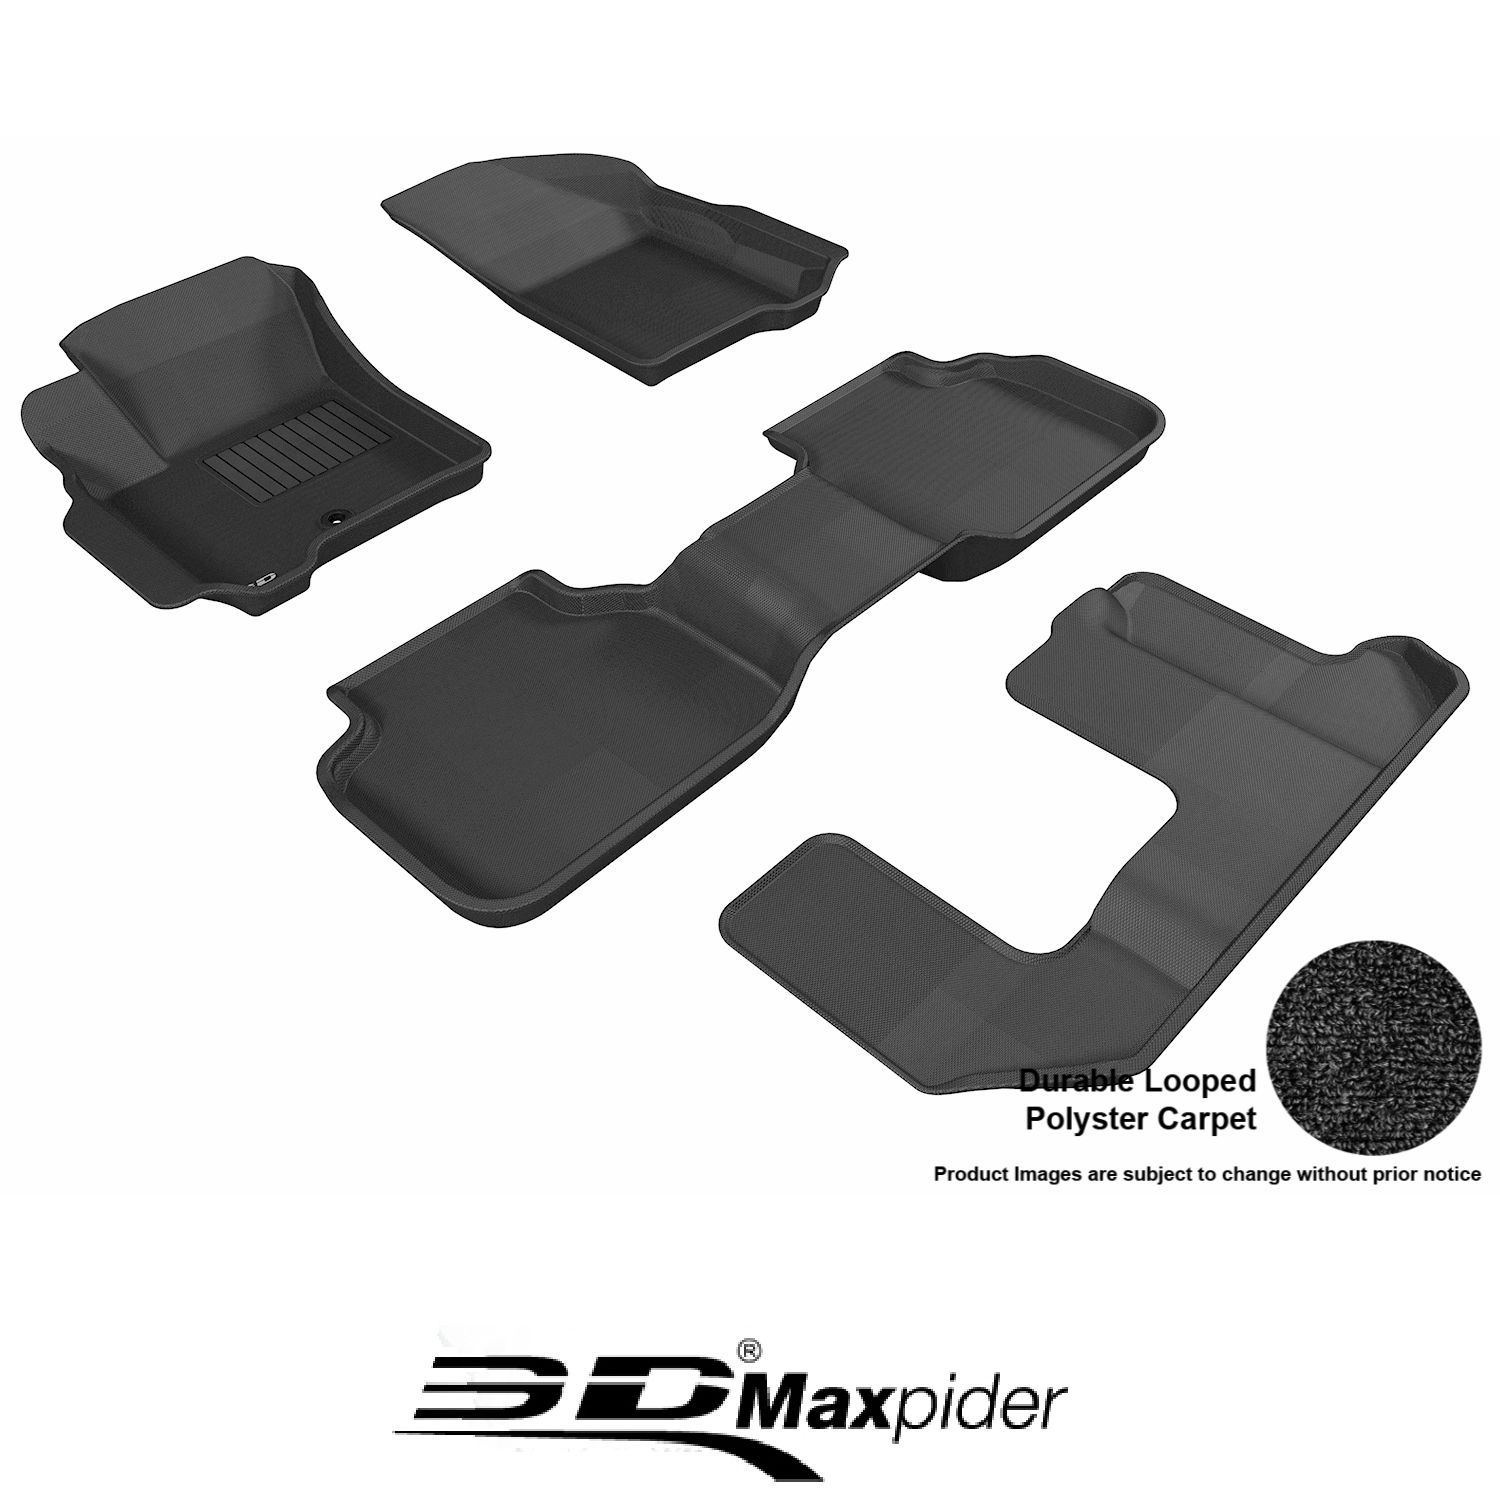 GGBAILEY D2725A-F1A-BK-LP Custom Fit Automotive Carpet Floor Mats for 1988 1993 Volkswagen Cabriolet Black Loop Driver /& Passenger 1991 1990 1992 1989